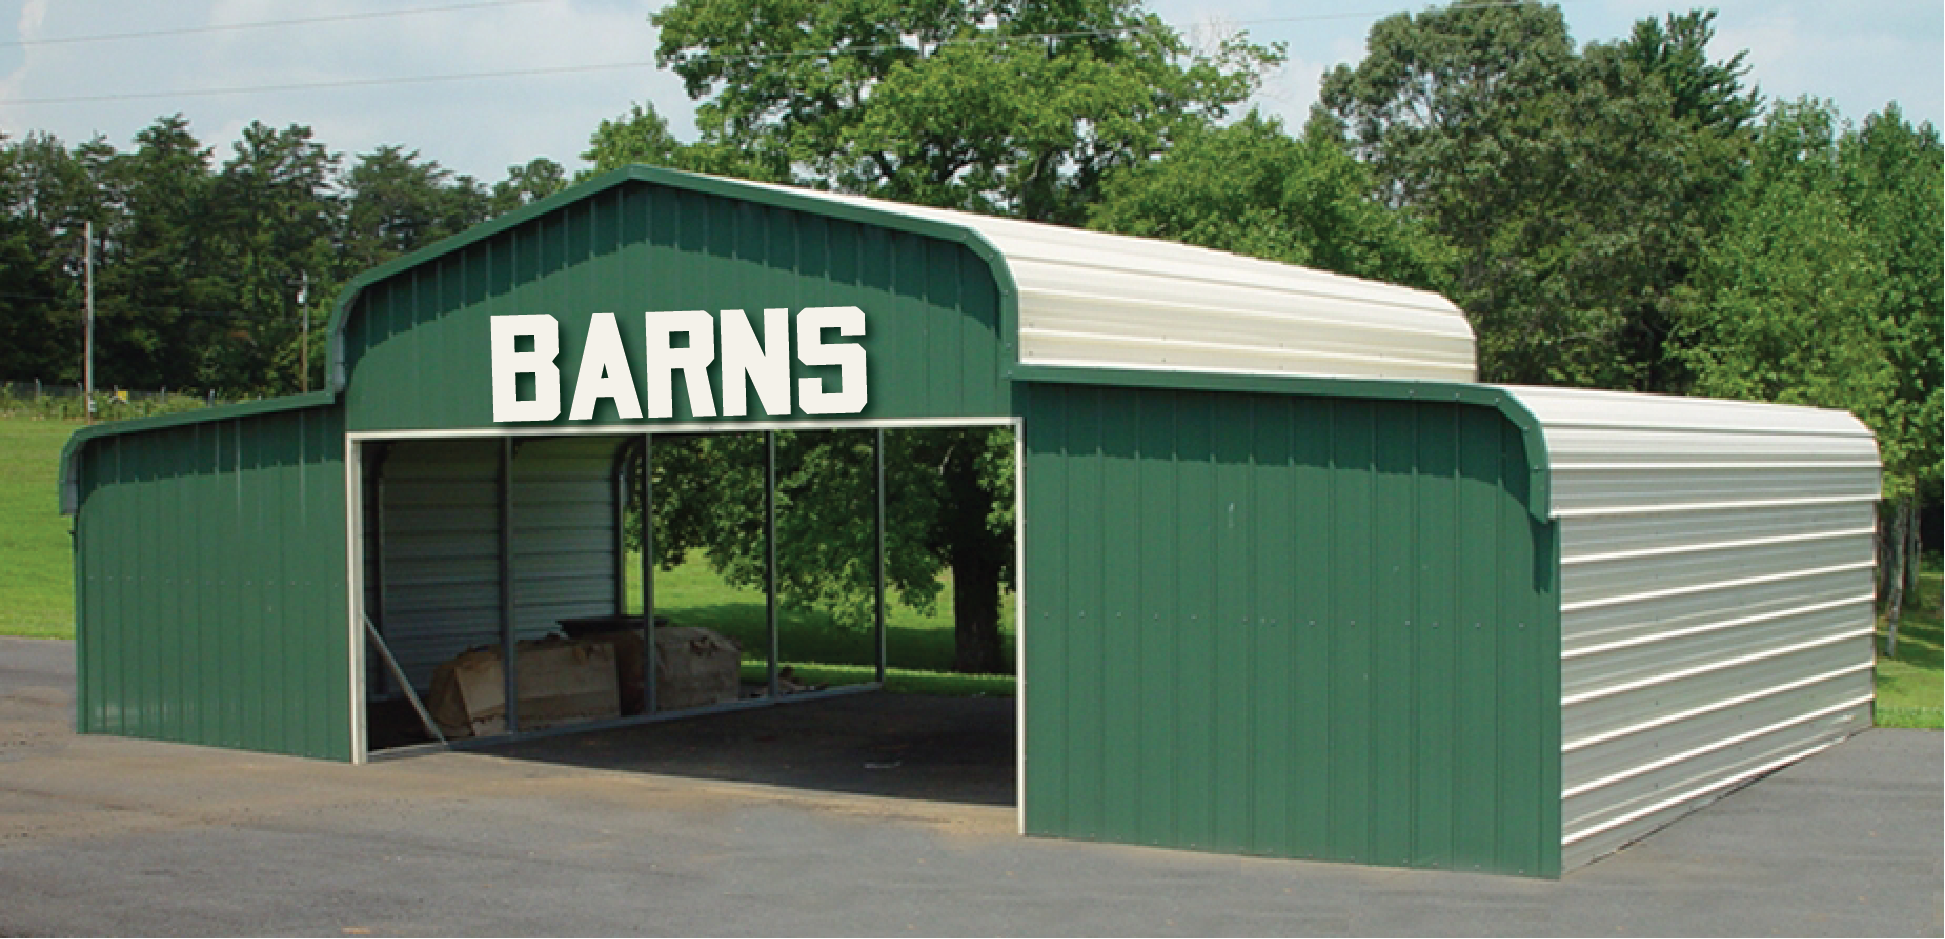 Carolina Carports - Barns